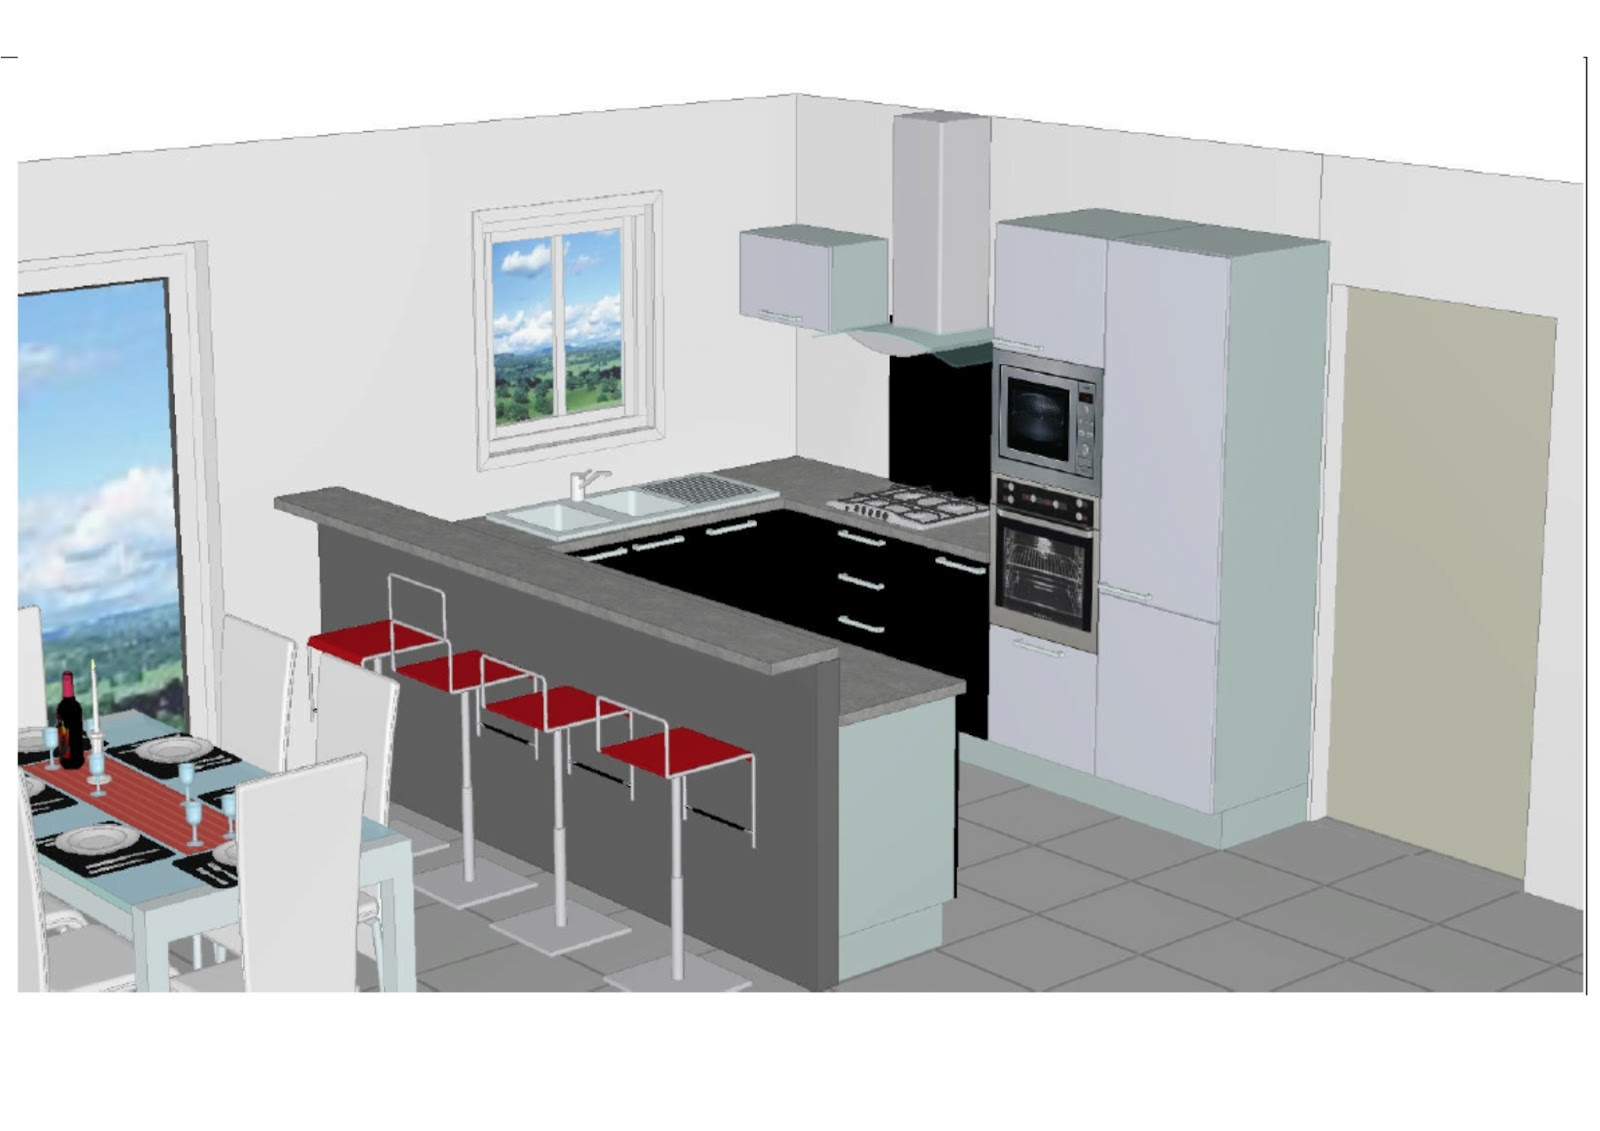 Maison sponsoris e 41 label rt 2012 oucques 41290 for Plan cuisine 3d